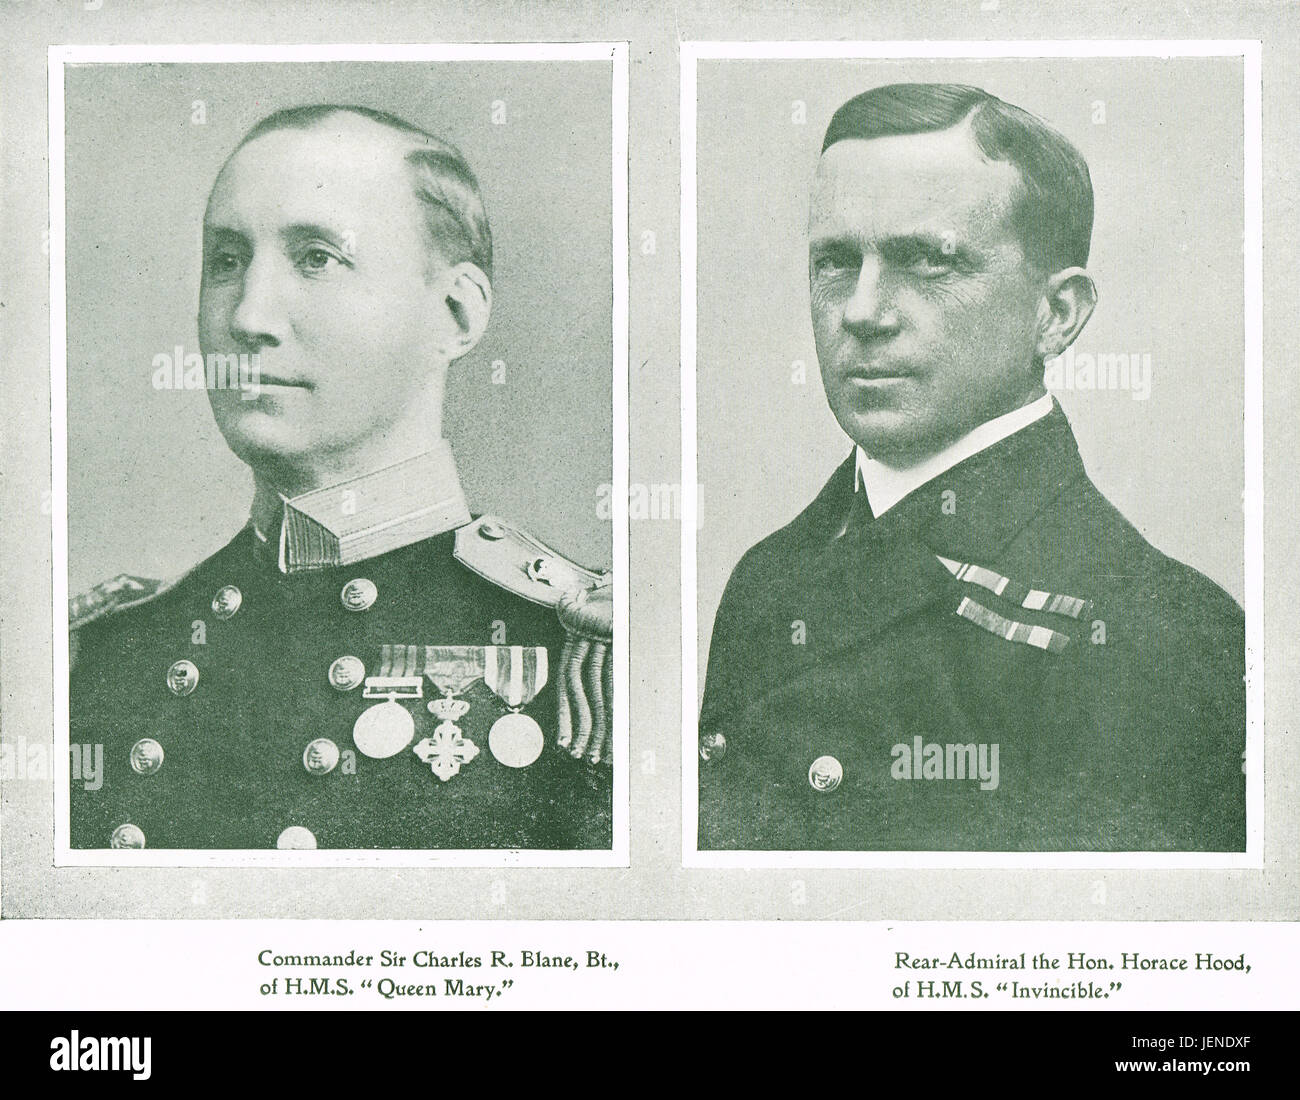 Battle of Jutland Royal Navy casualties Commander Charles Blane Of HMS Queen Mary, & Rear Admiral Horace Hood - Stock Image